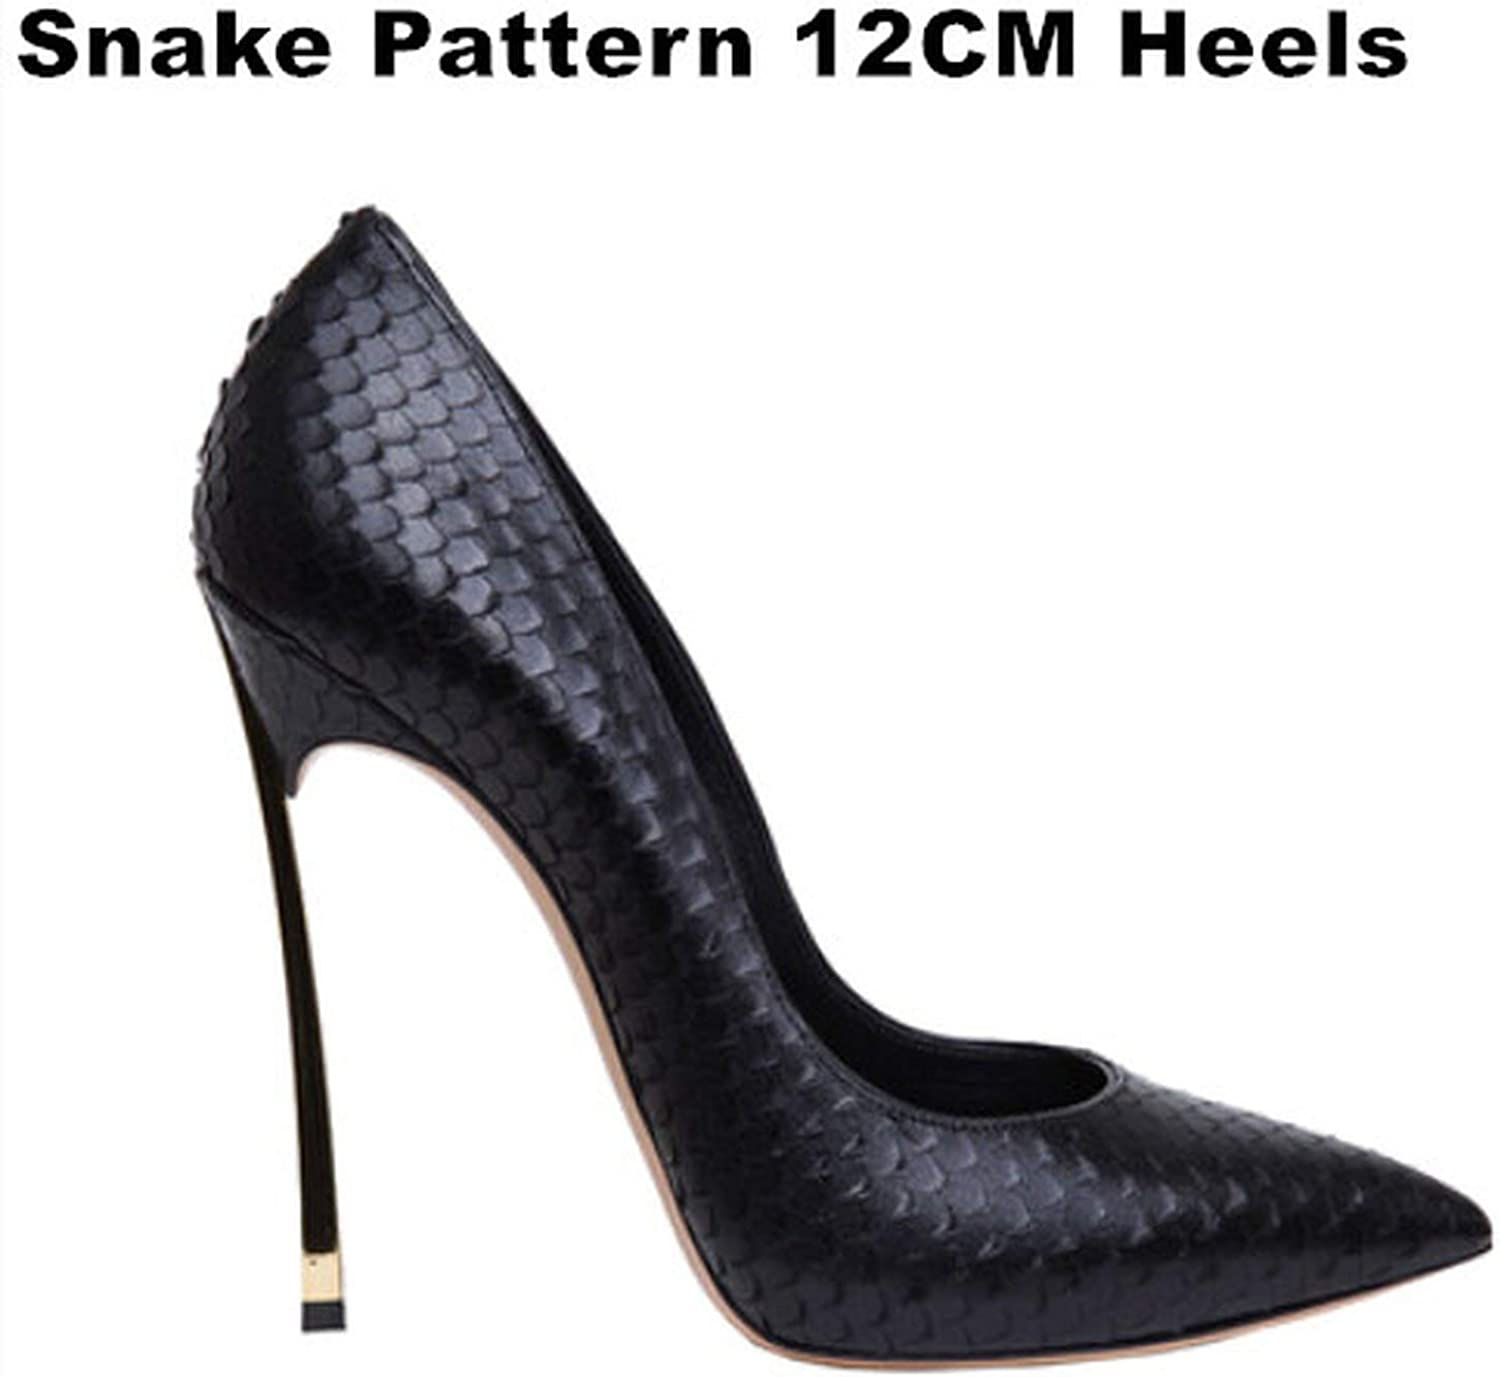 Pumps Stiletto 12Cm Heels Sexy shoes Leather Pointed Toe High Heels B-0029